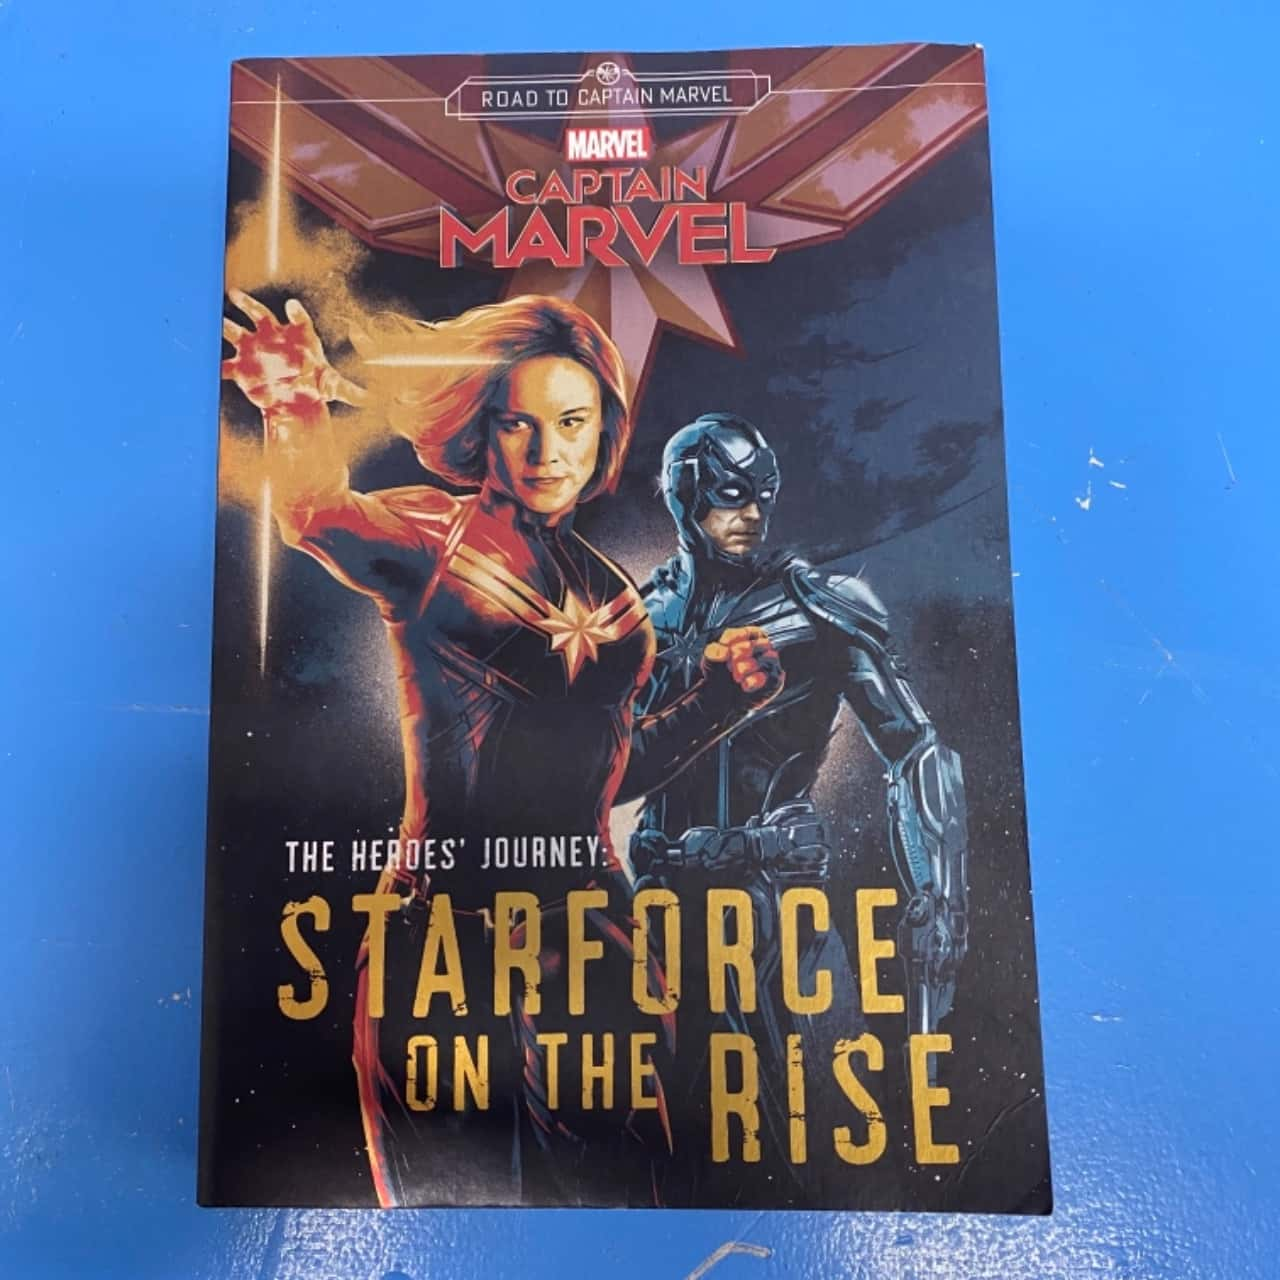 Captain Marvel The Hero's Journey: Star Force On The Rise Book